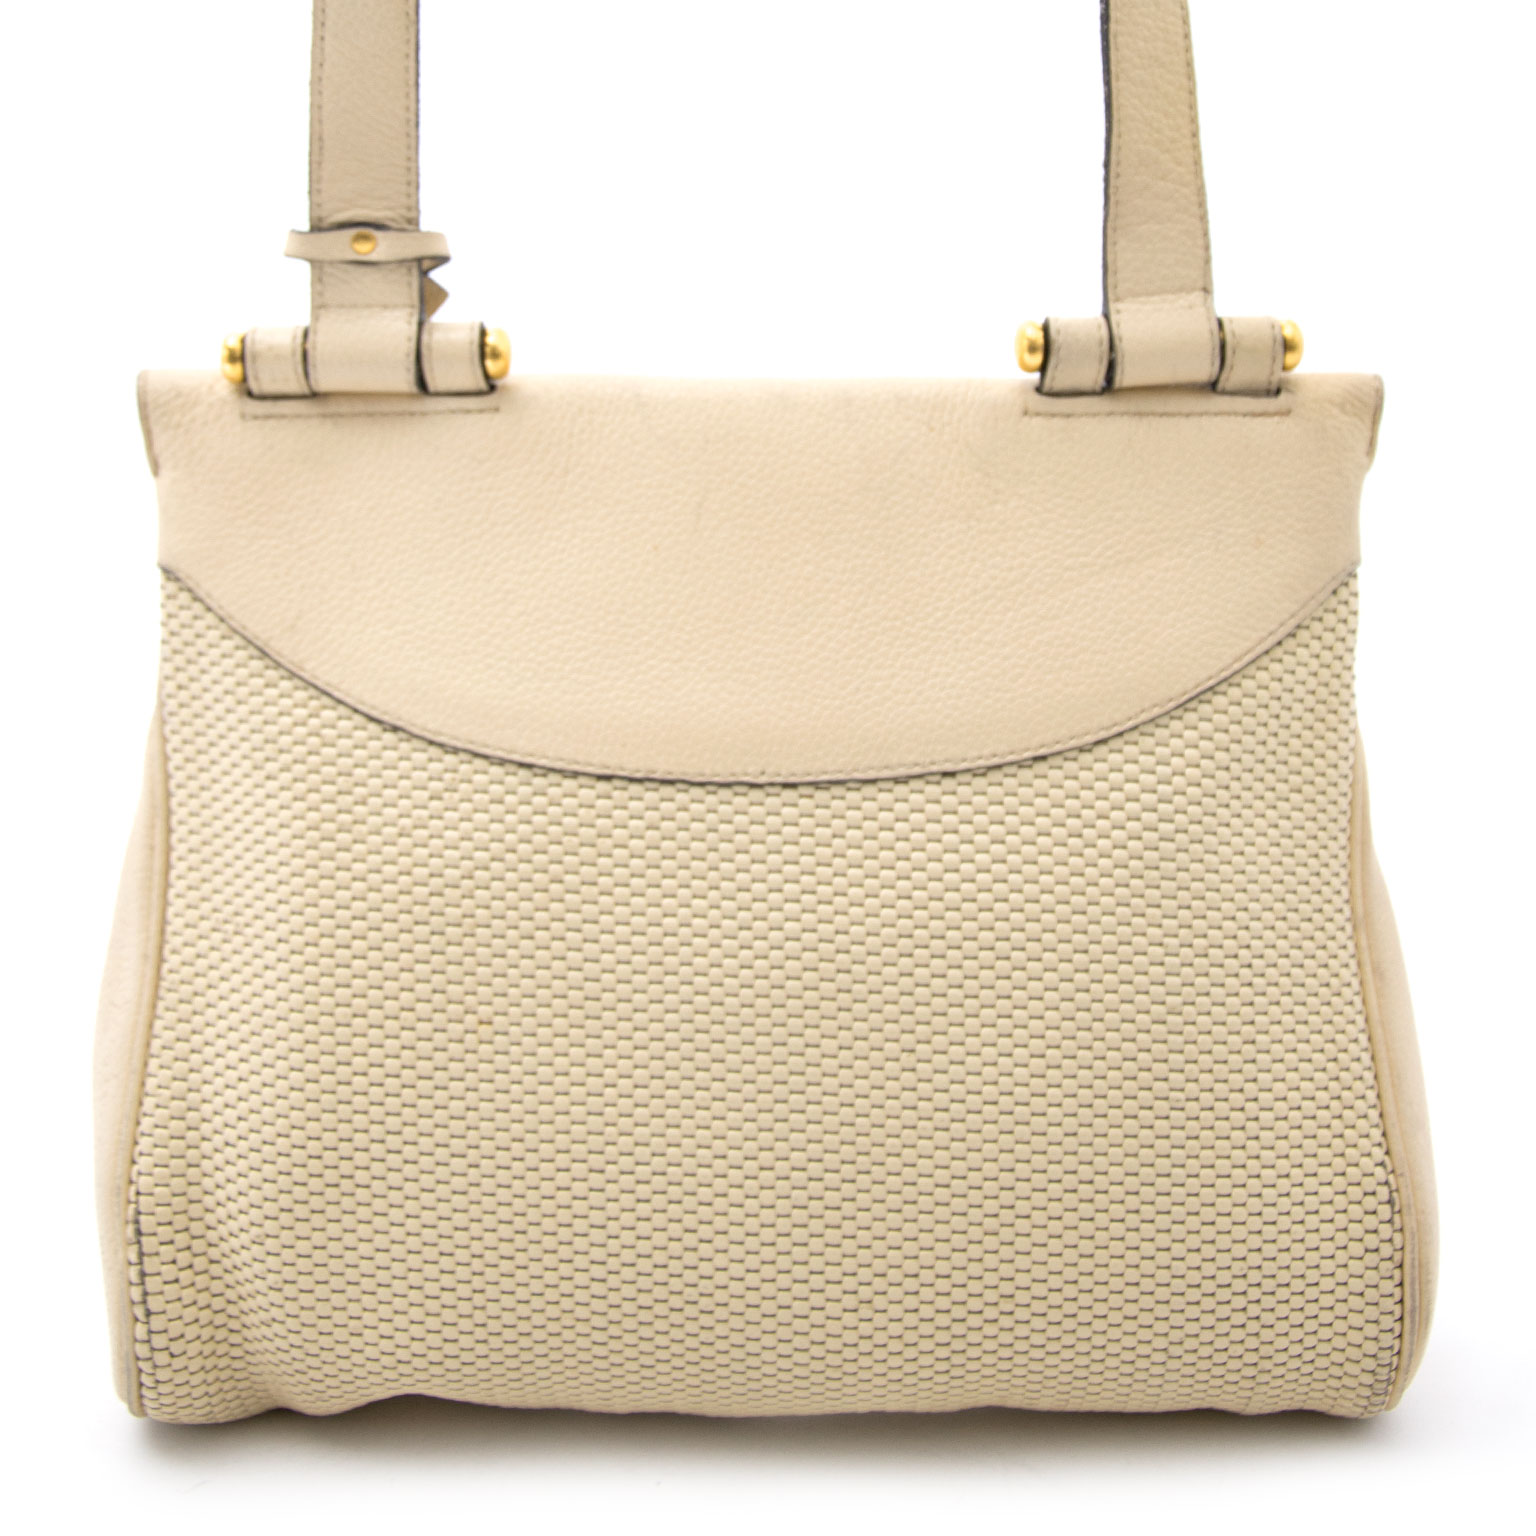 Authentic Delvaux Beige Chablis Toile de Cuir Bag at the right price 2017